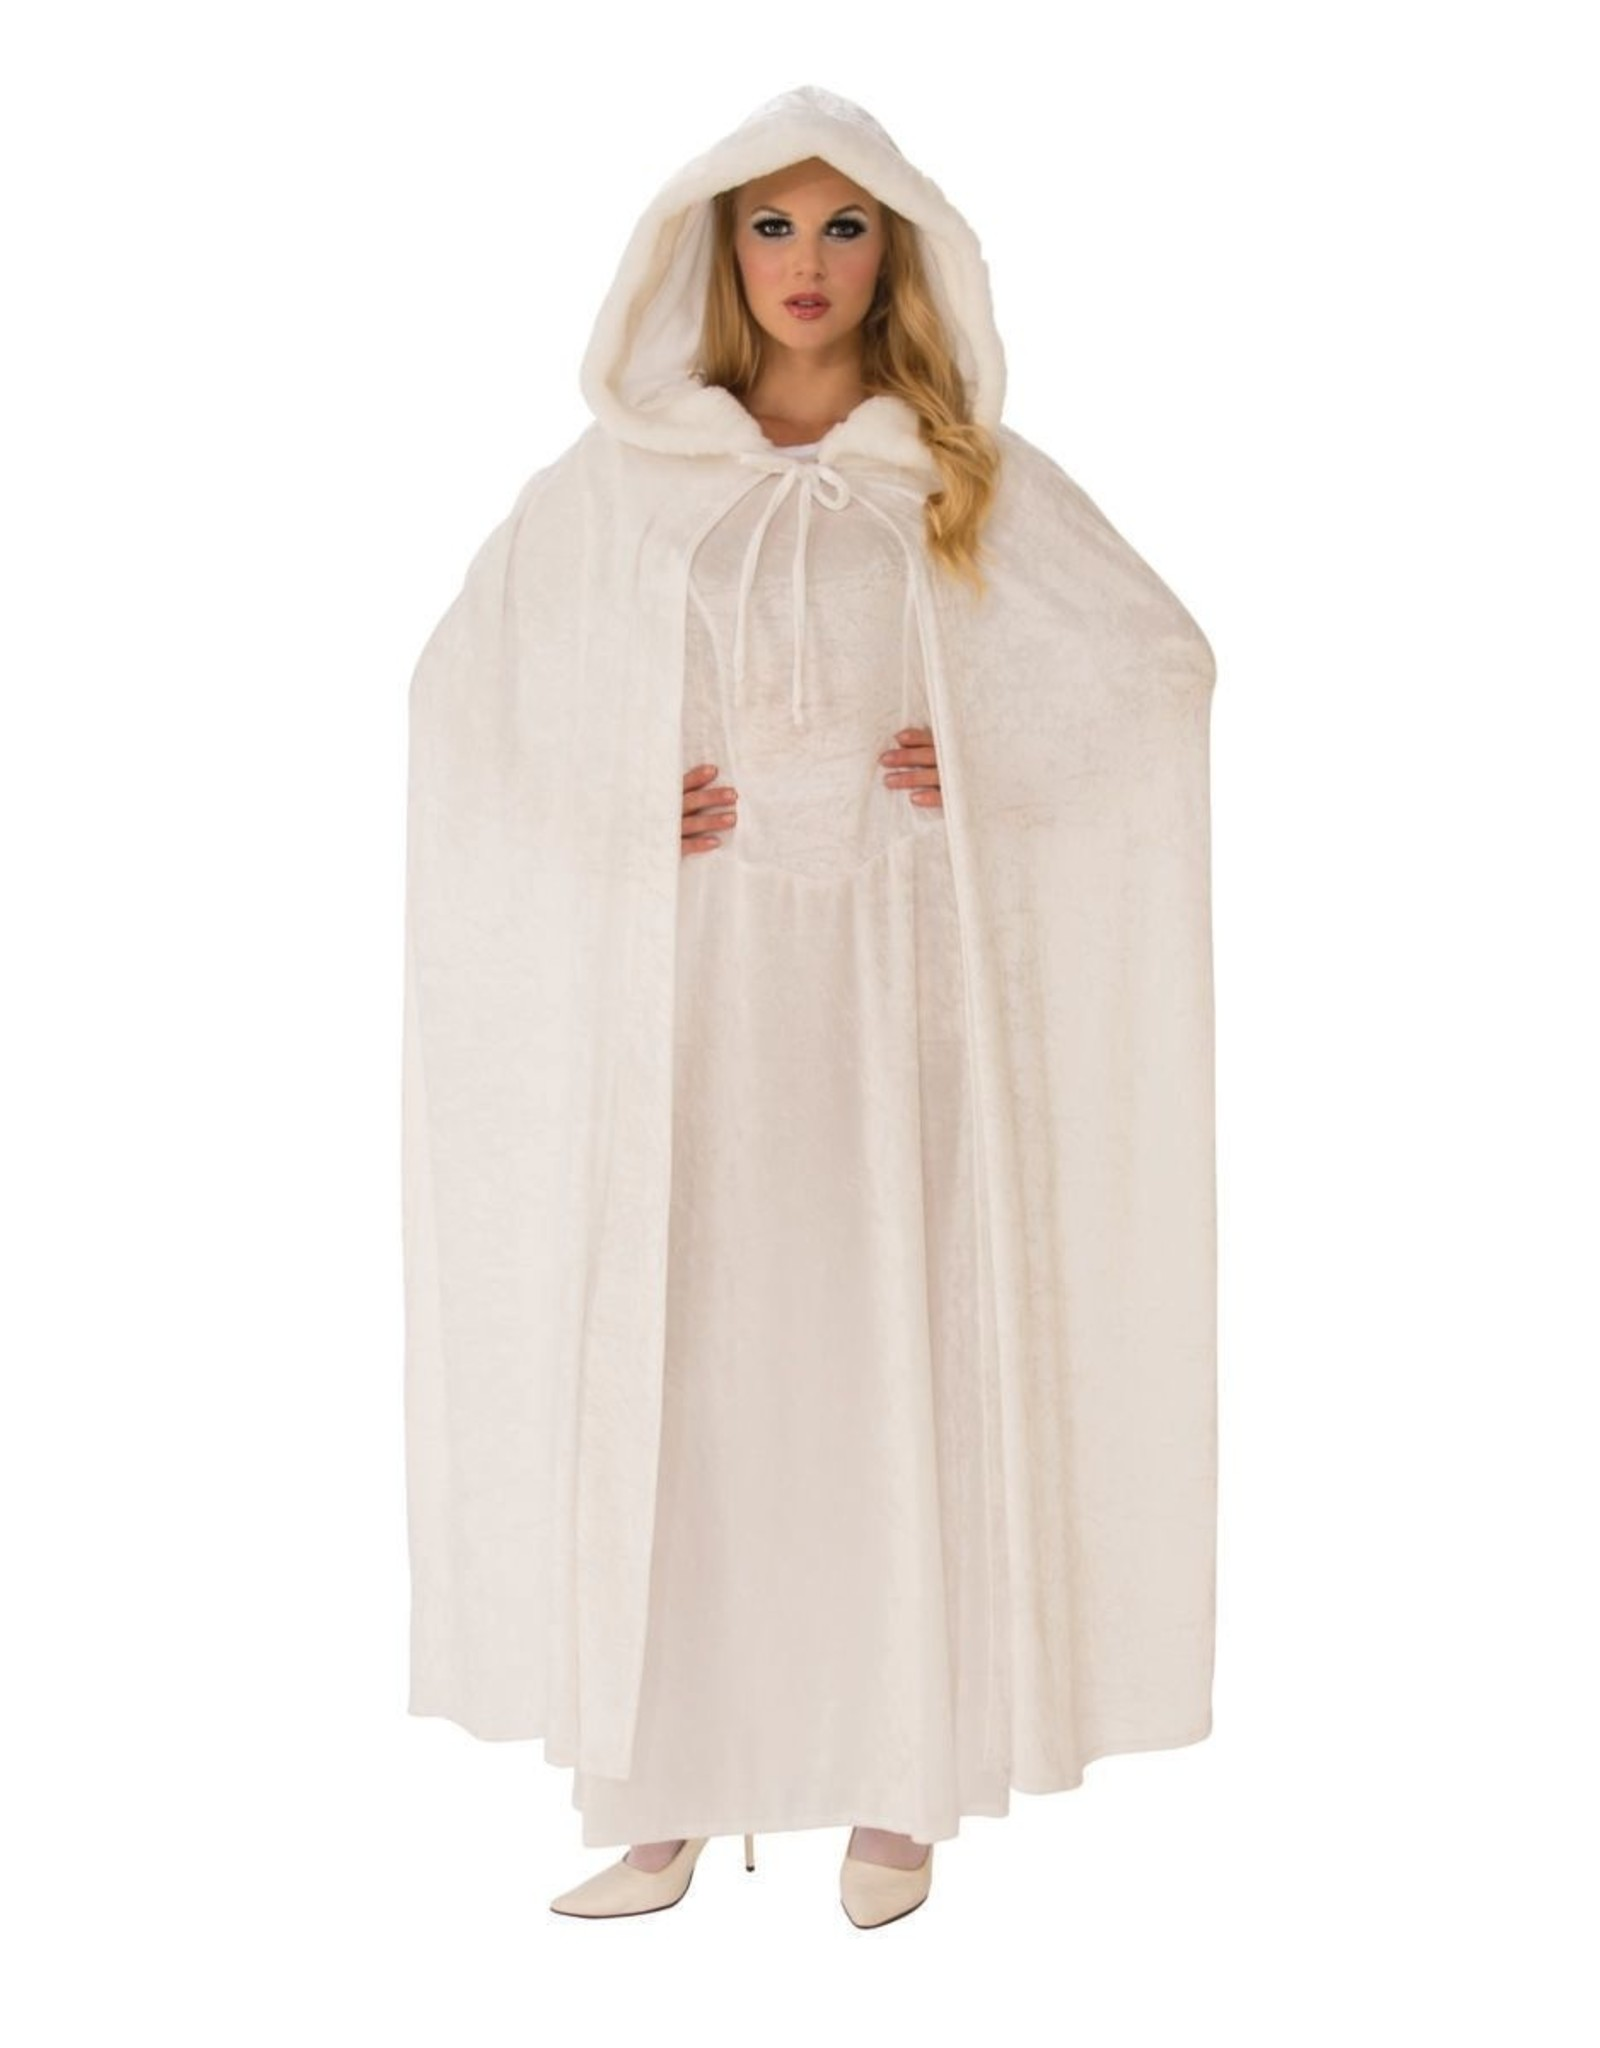 Rubies Costume Wintry White Cape